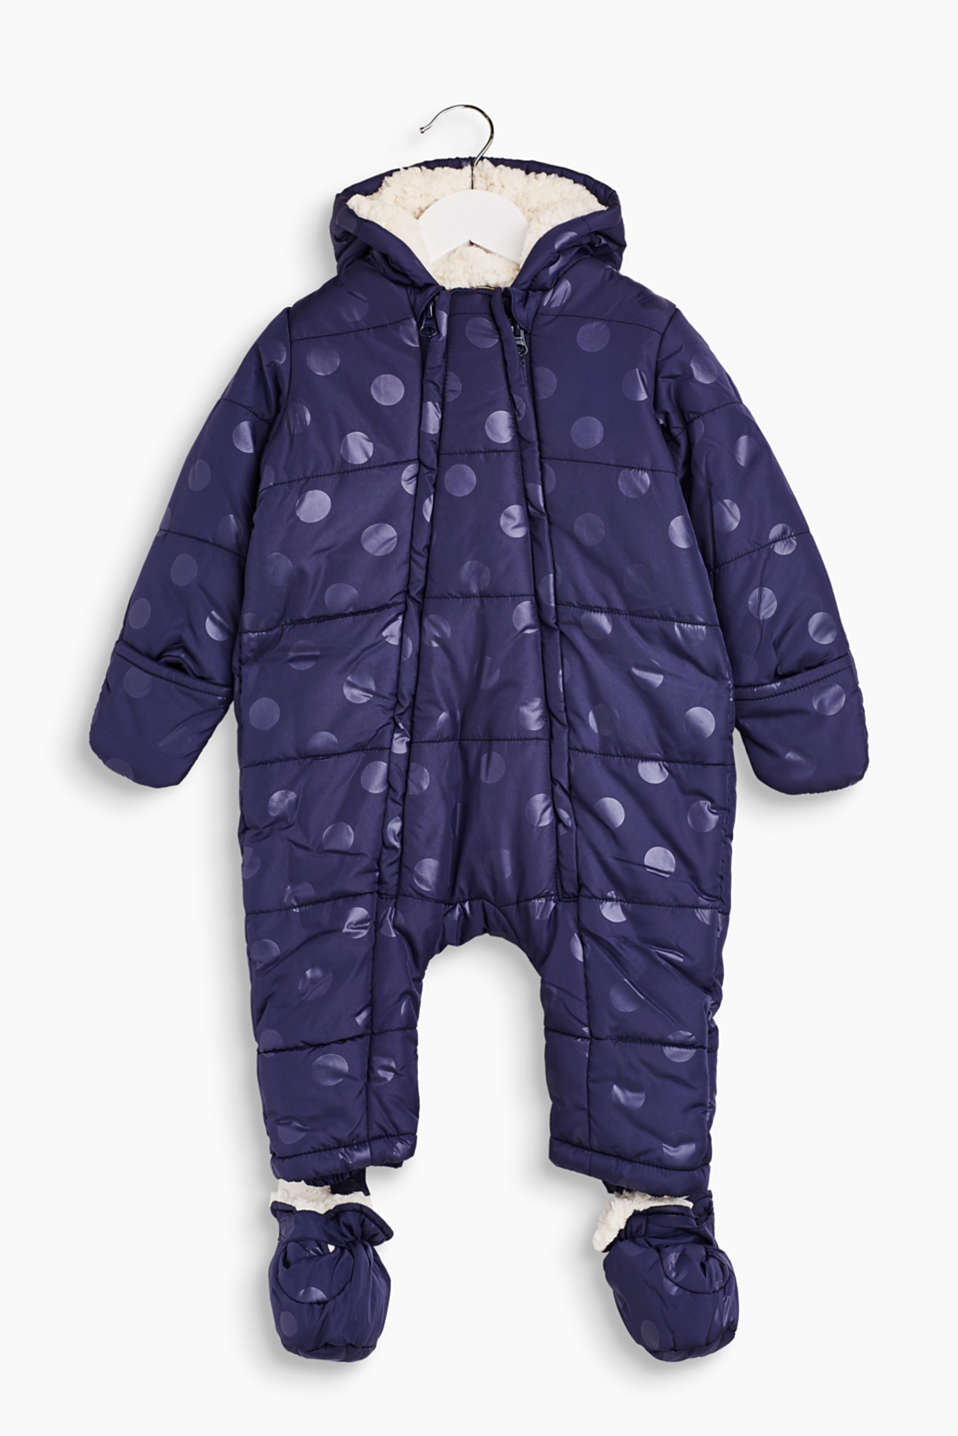 This cosy and warm snow suit with adjustable socks and shimmering polka dots is perfect for winter.